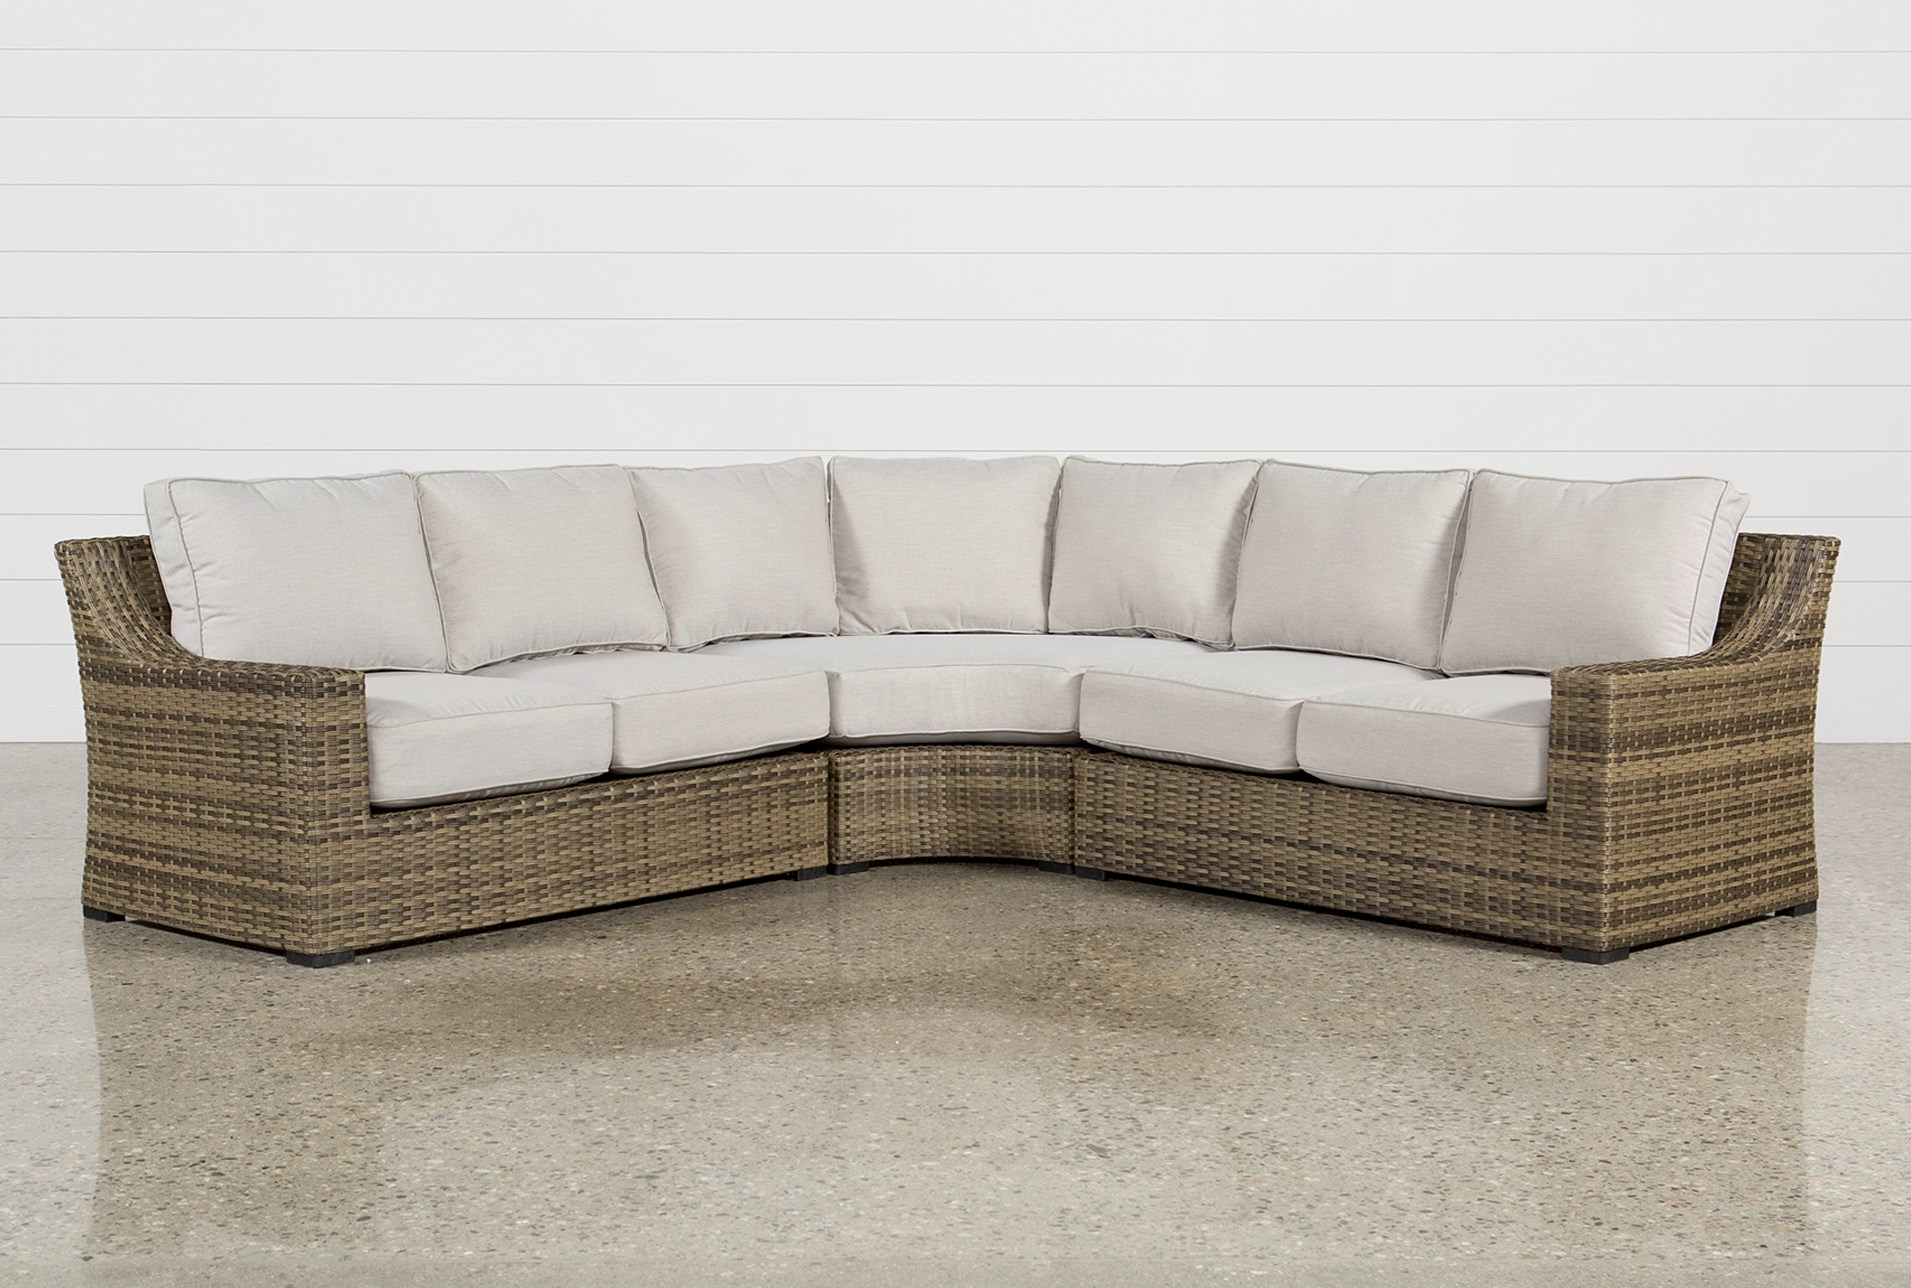 Outdoor aventura 3 piece sectional qty 1 has been successfully added to your cart